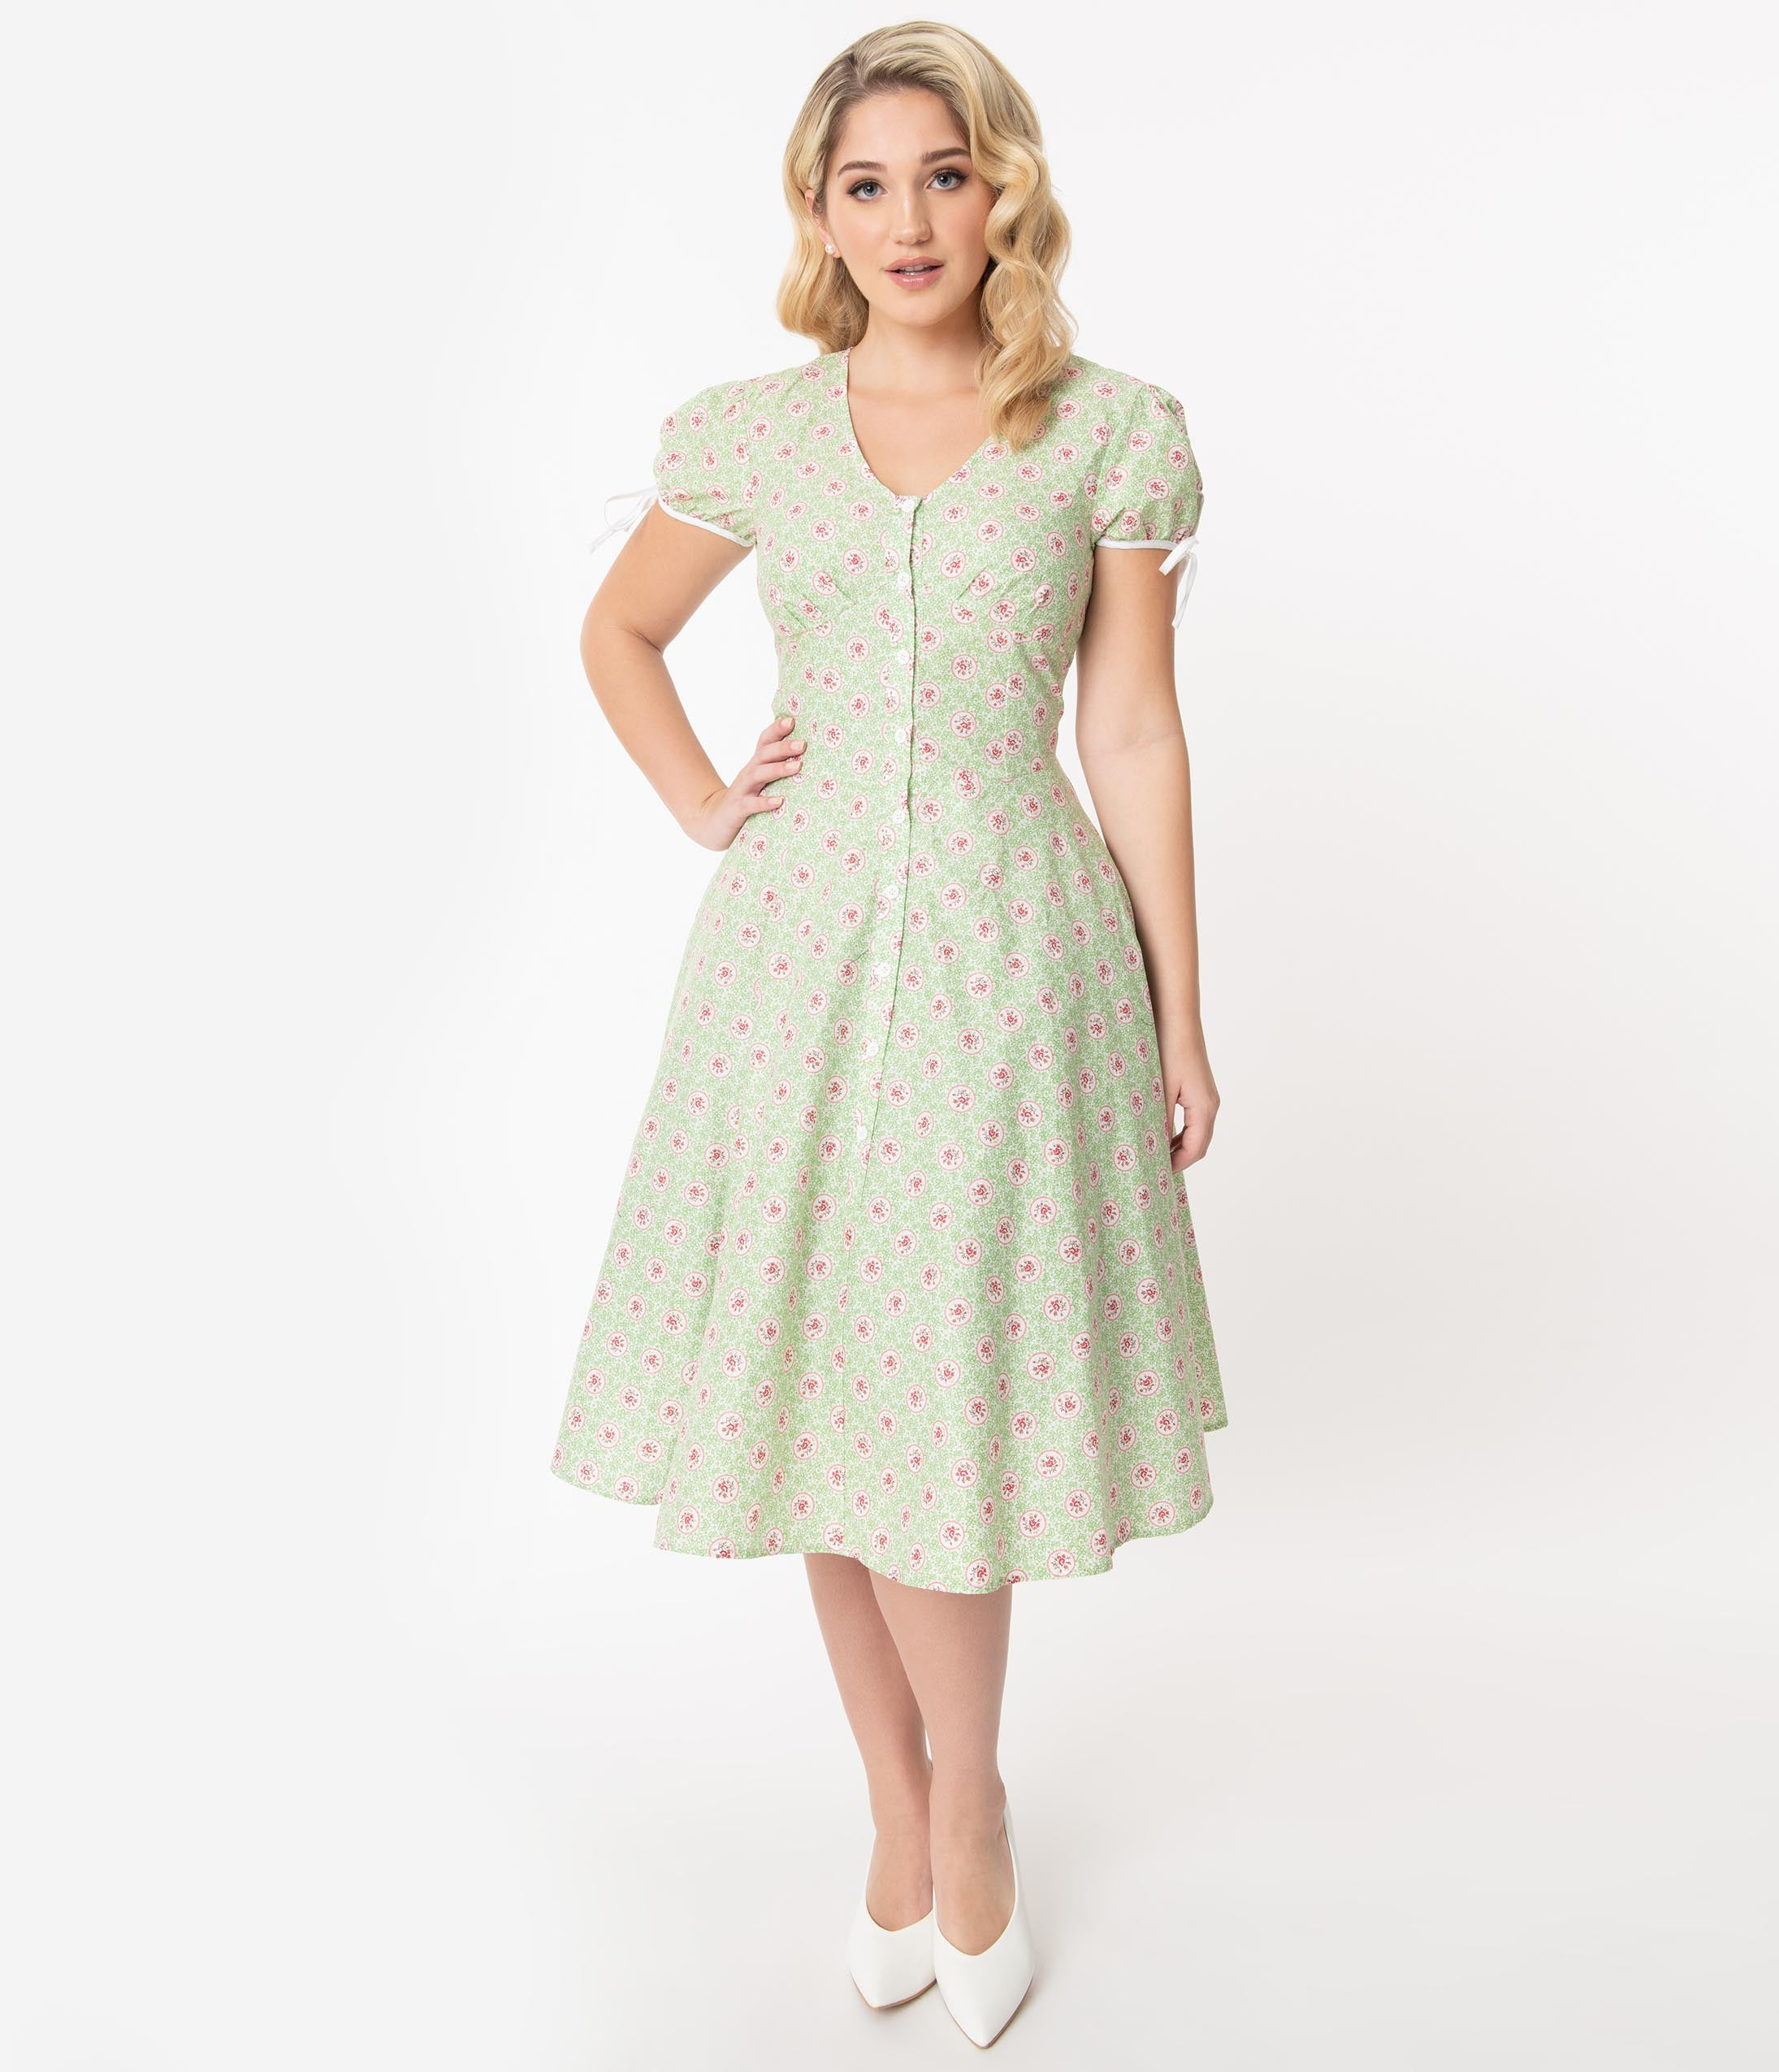 1940s Fashion Advice for Tall Women Unique Vintage Mint Floral Print Dora Swing Dress $78.00 AT vintagedancer.com